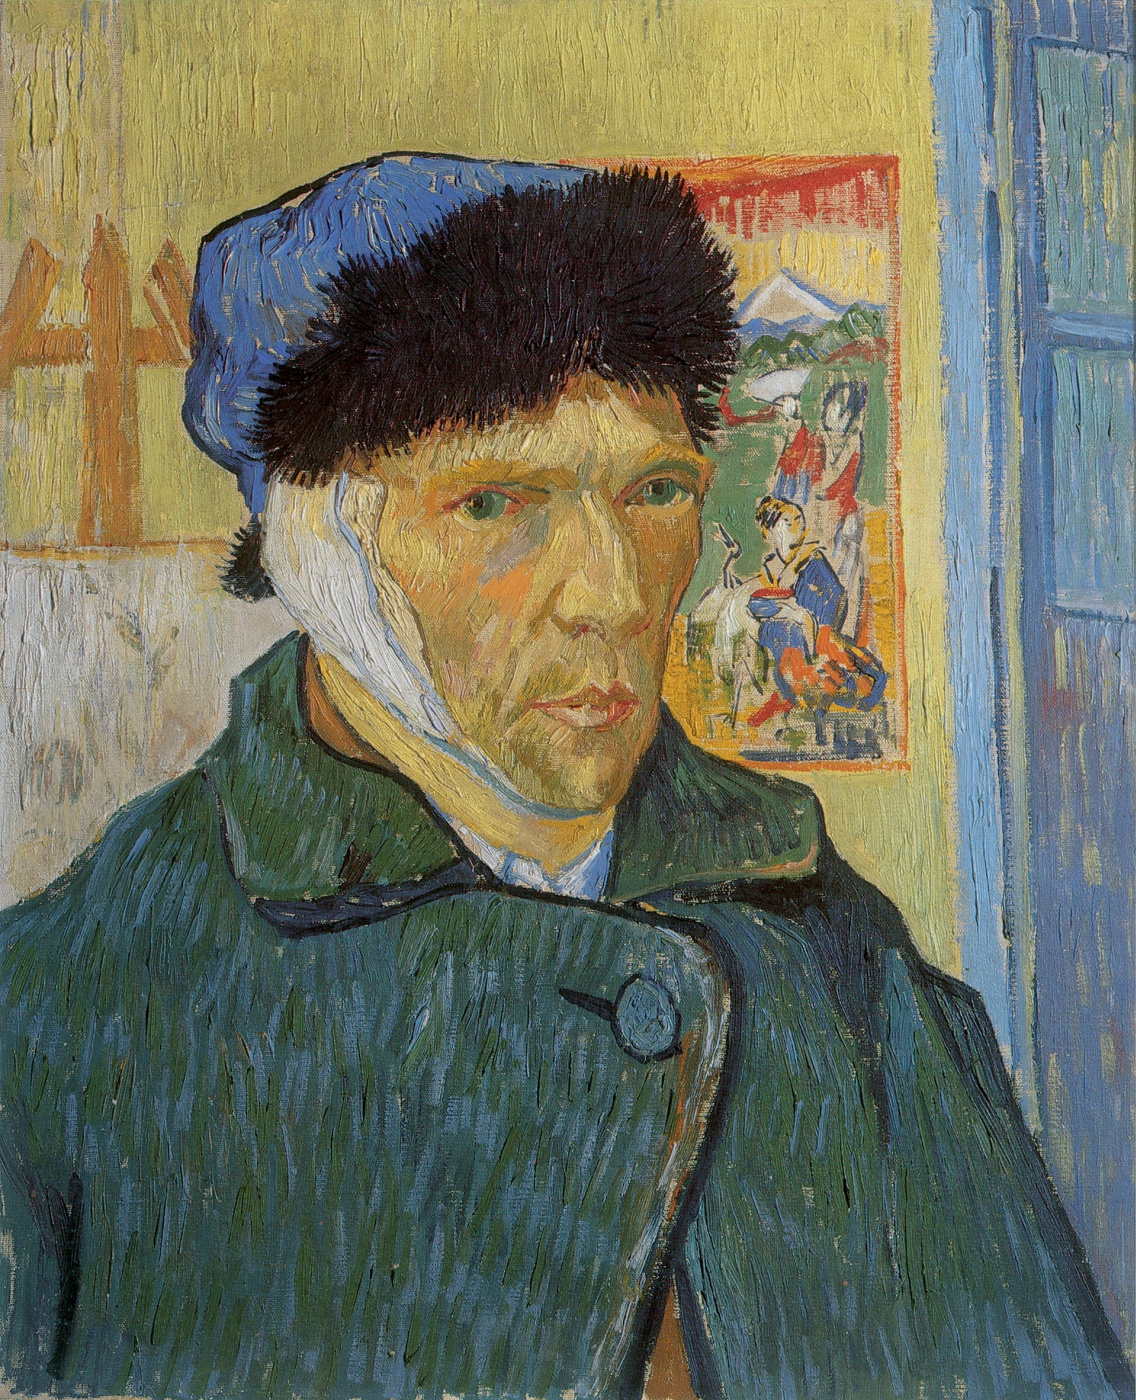 Vincent van Gogh. Self-portrait with bandaged ear